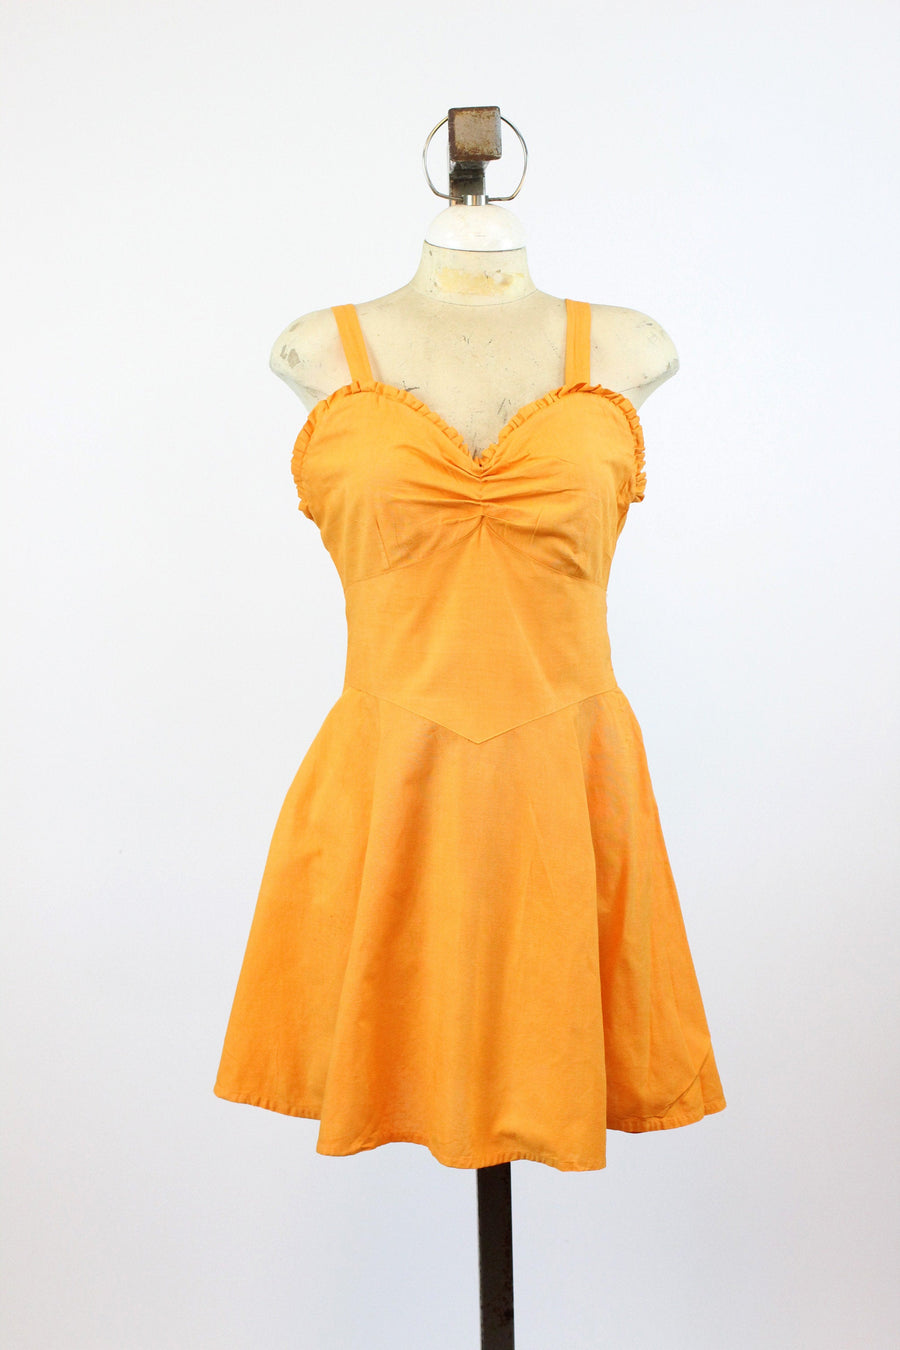 1940s tangerine playsuit dress medium large | vintage swim dress with briefs romper | new in